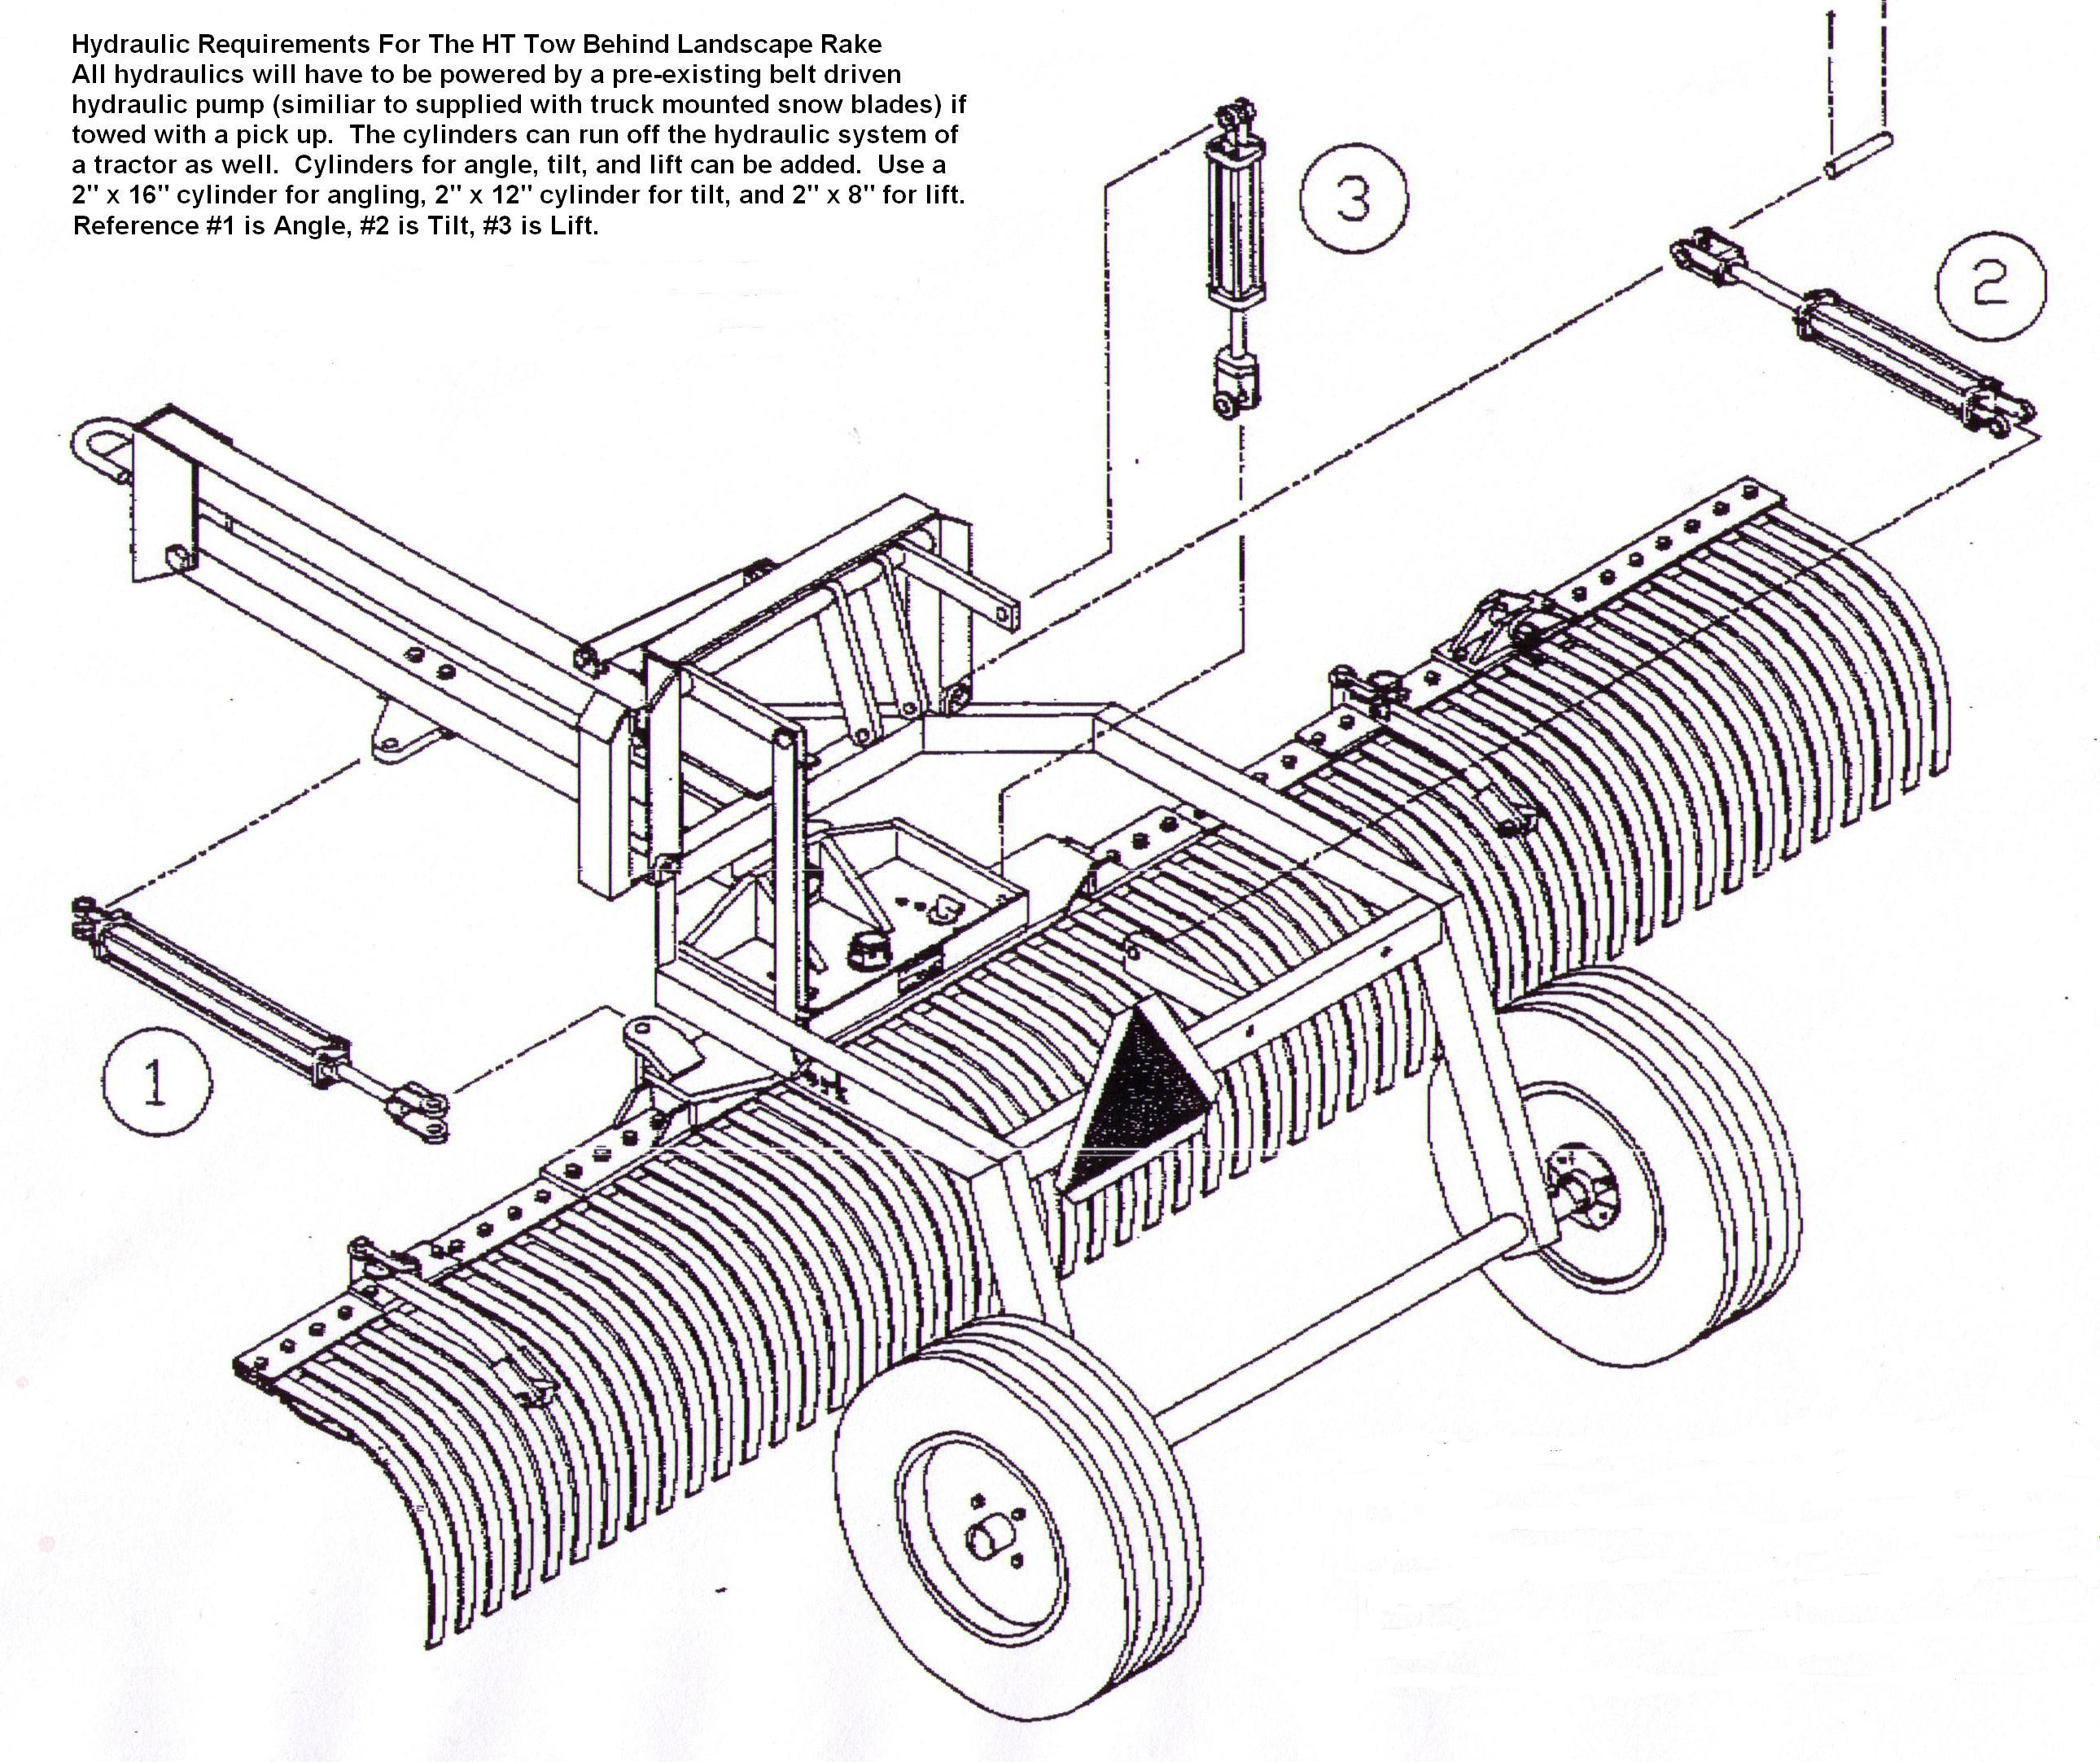 Drawing Showing Cylinder Placement